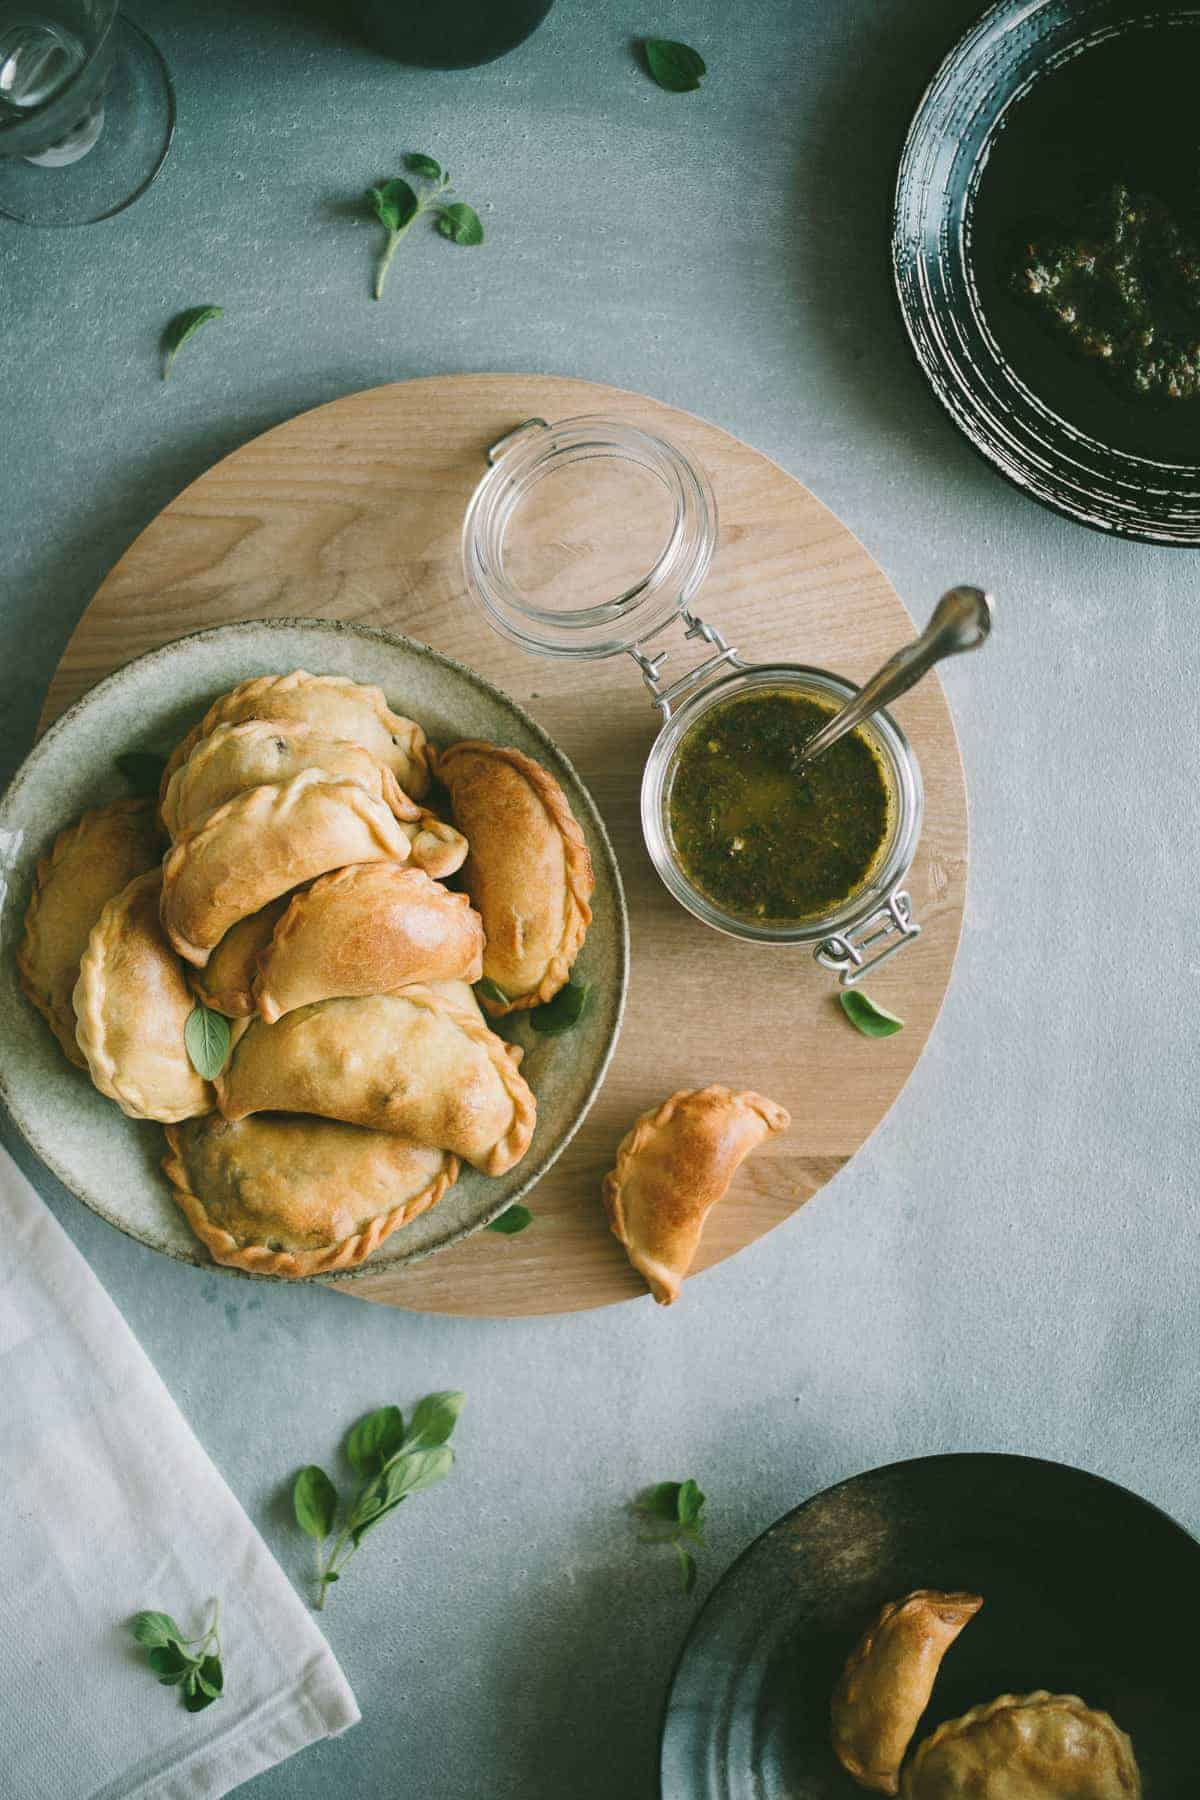 Lamb Empanadas with an oregano chimichurri dipping sauce